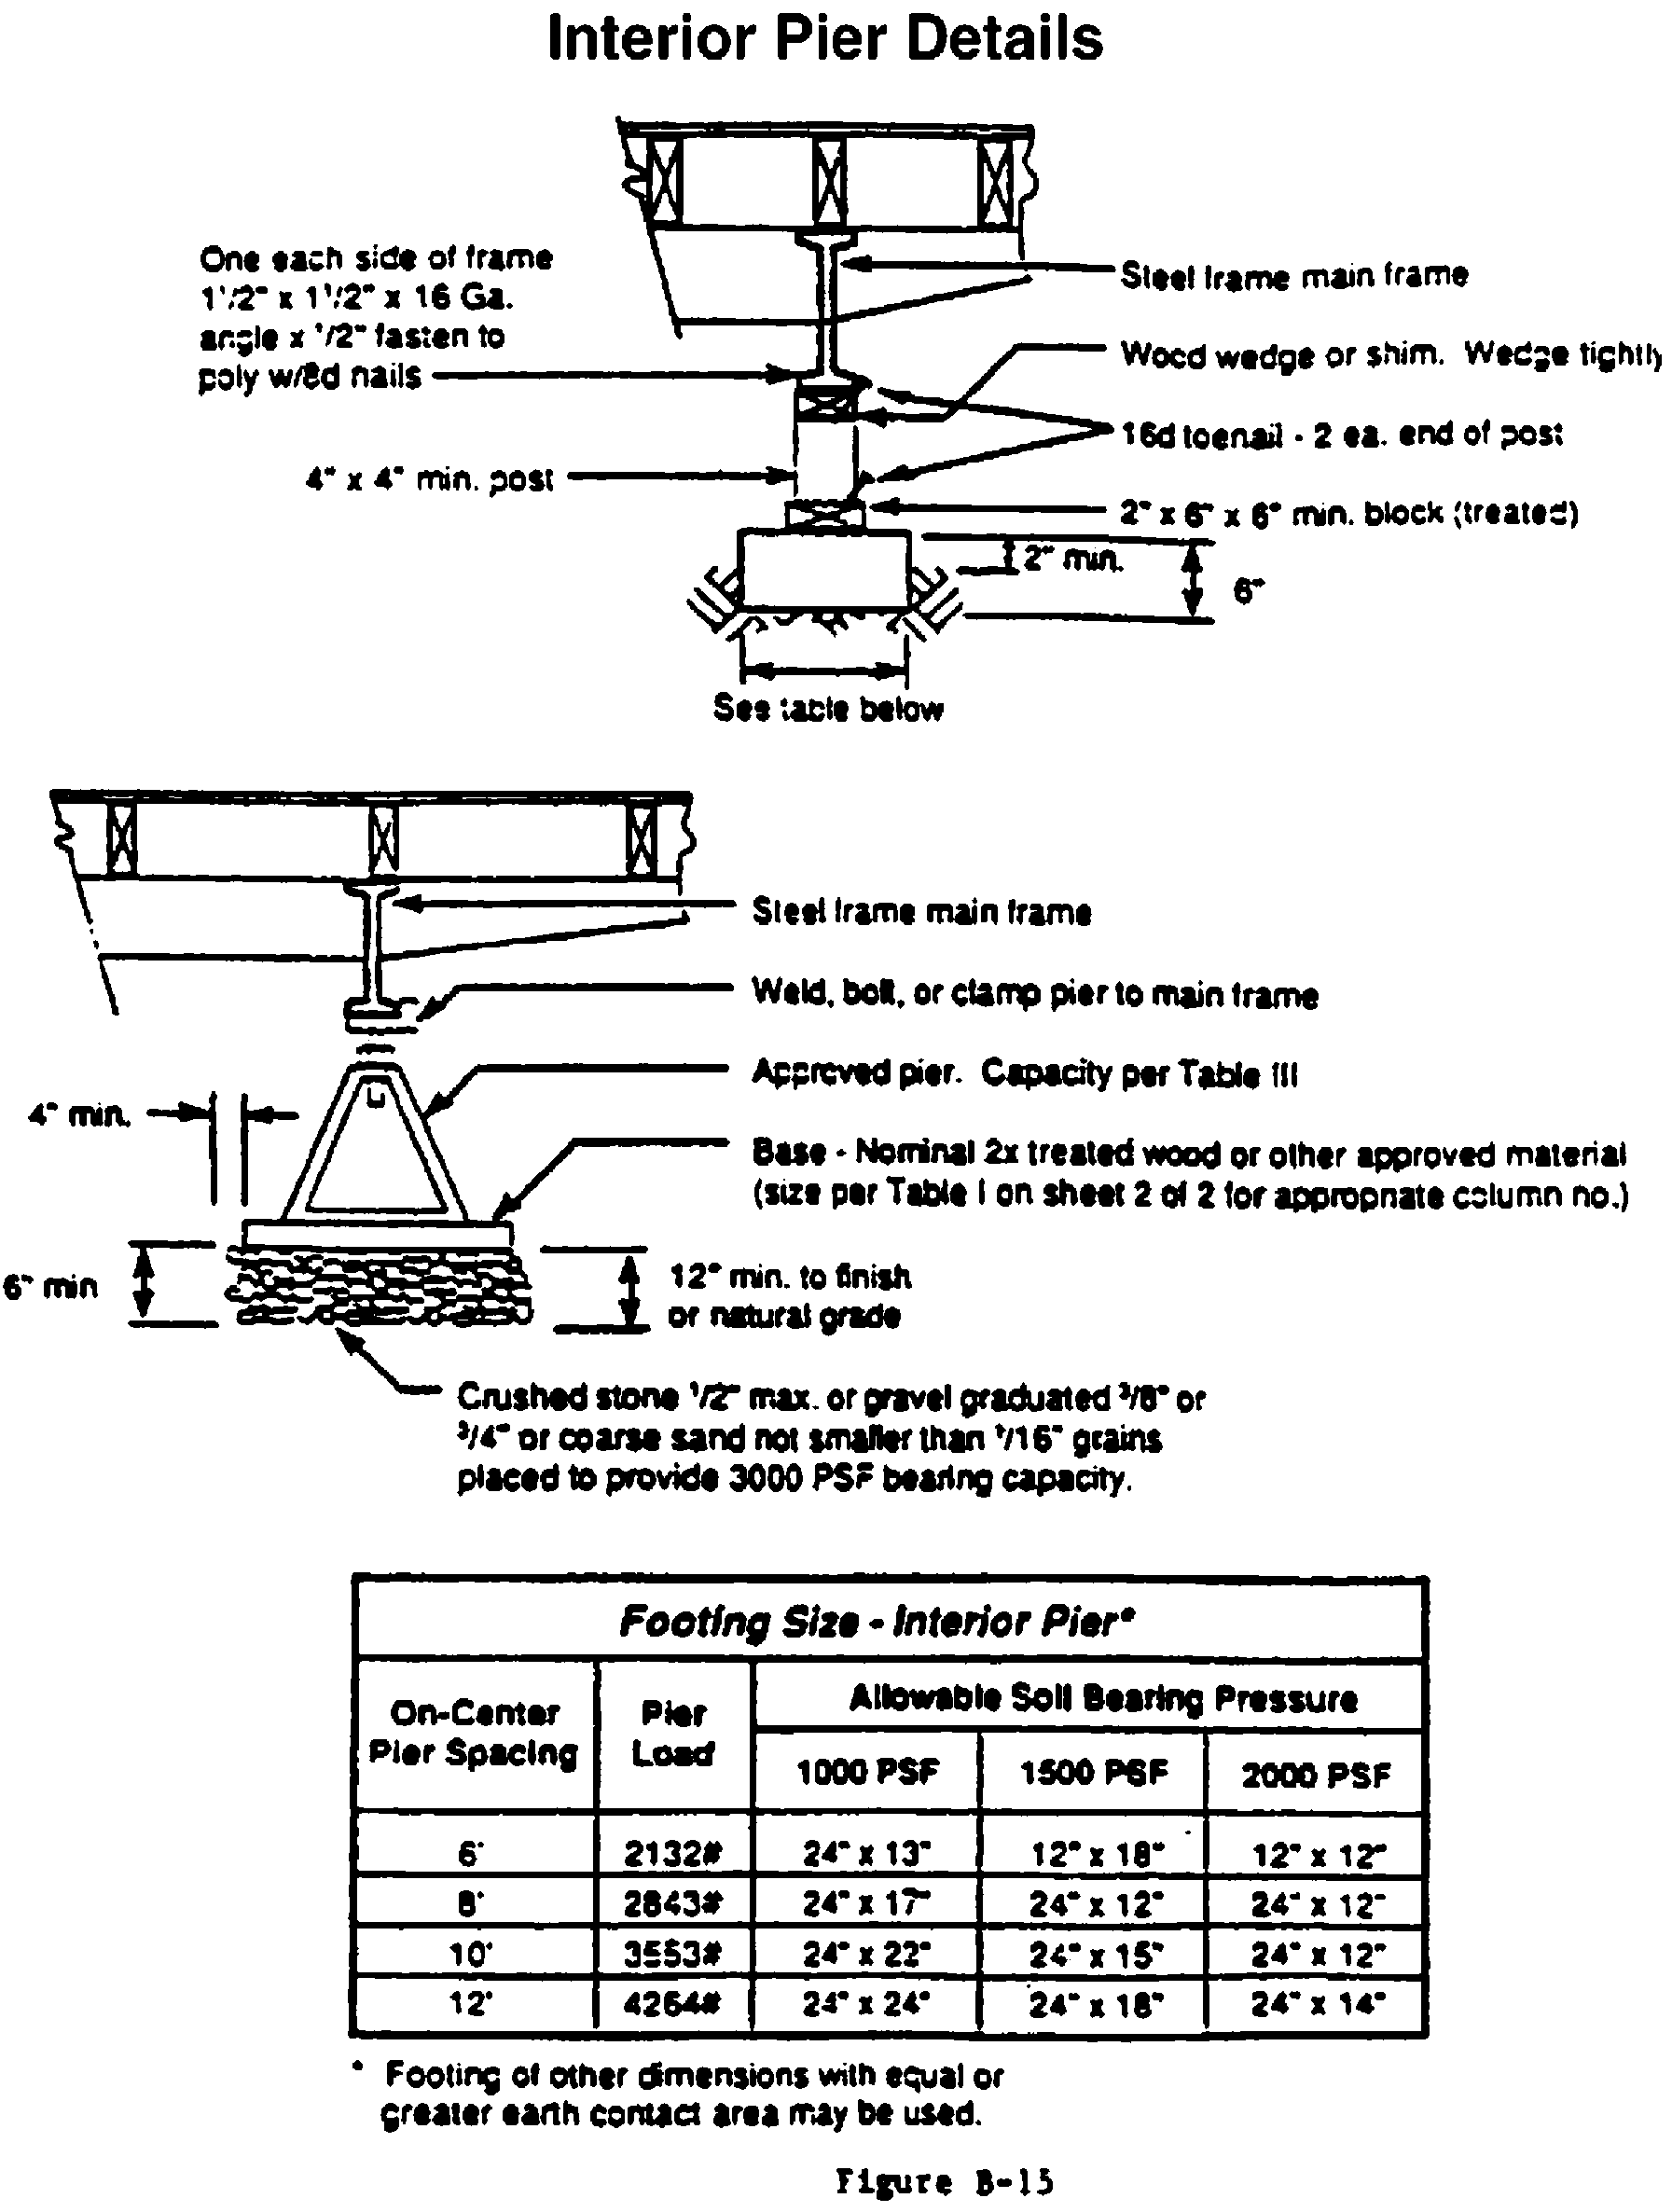 TYPICAL DESIGNS FOR LOAD-BEARING SUPPORTS FOR MANUFACTURED HOMES - Figure 13